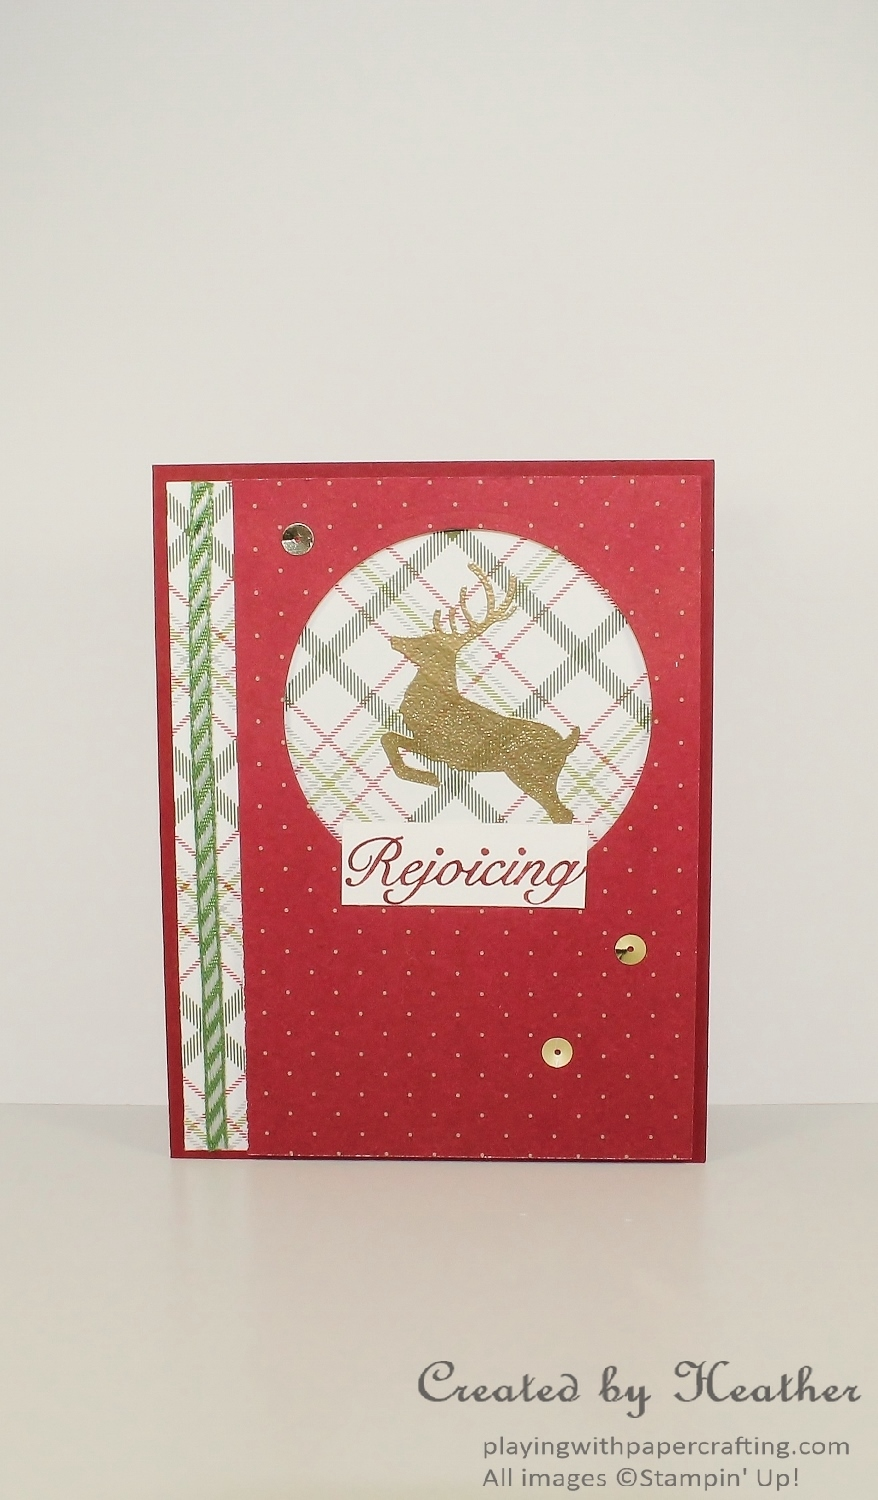 Playing With Papercrafting Have A Jolly Versatile Christmas